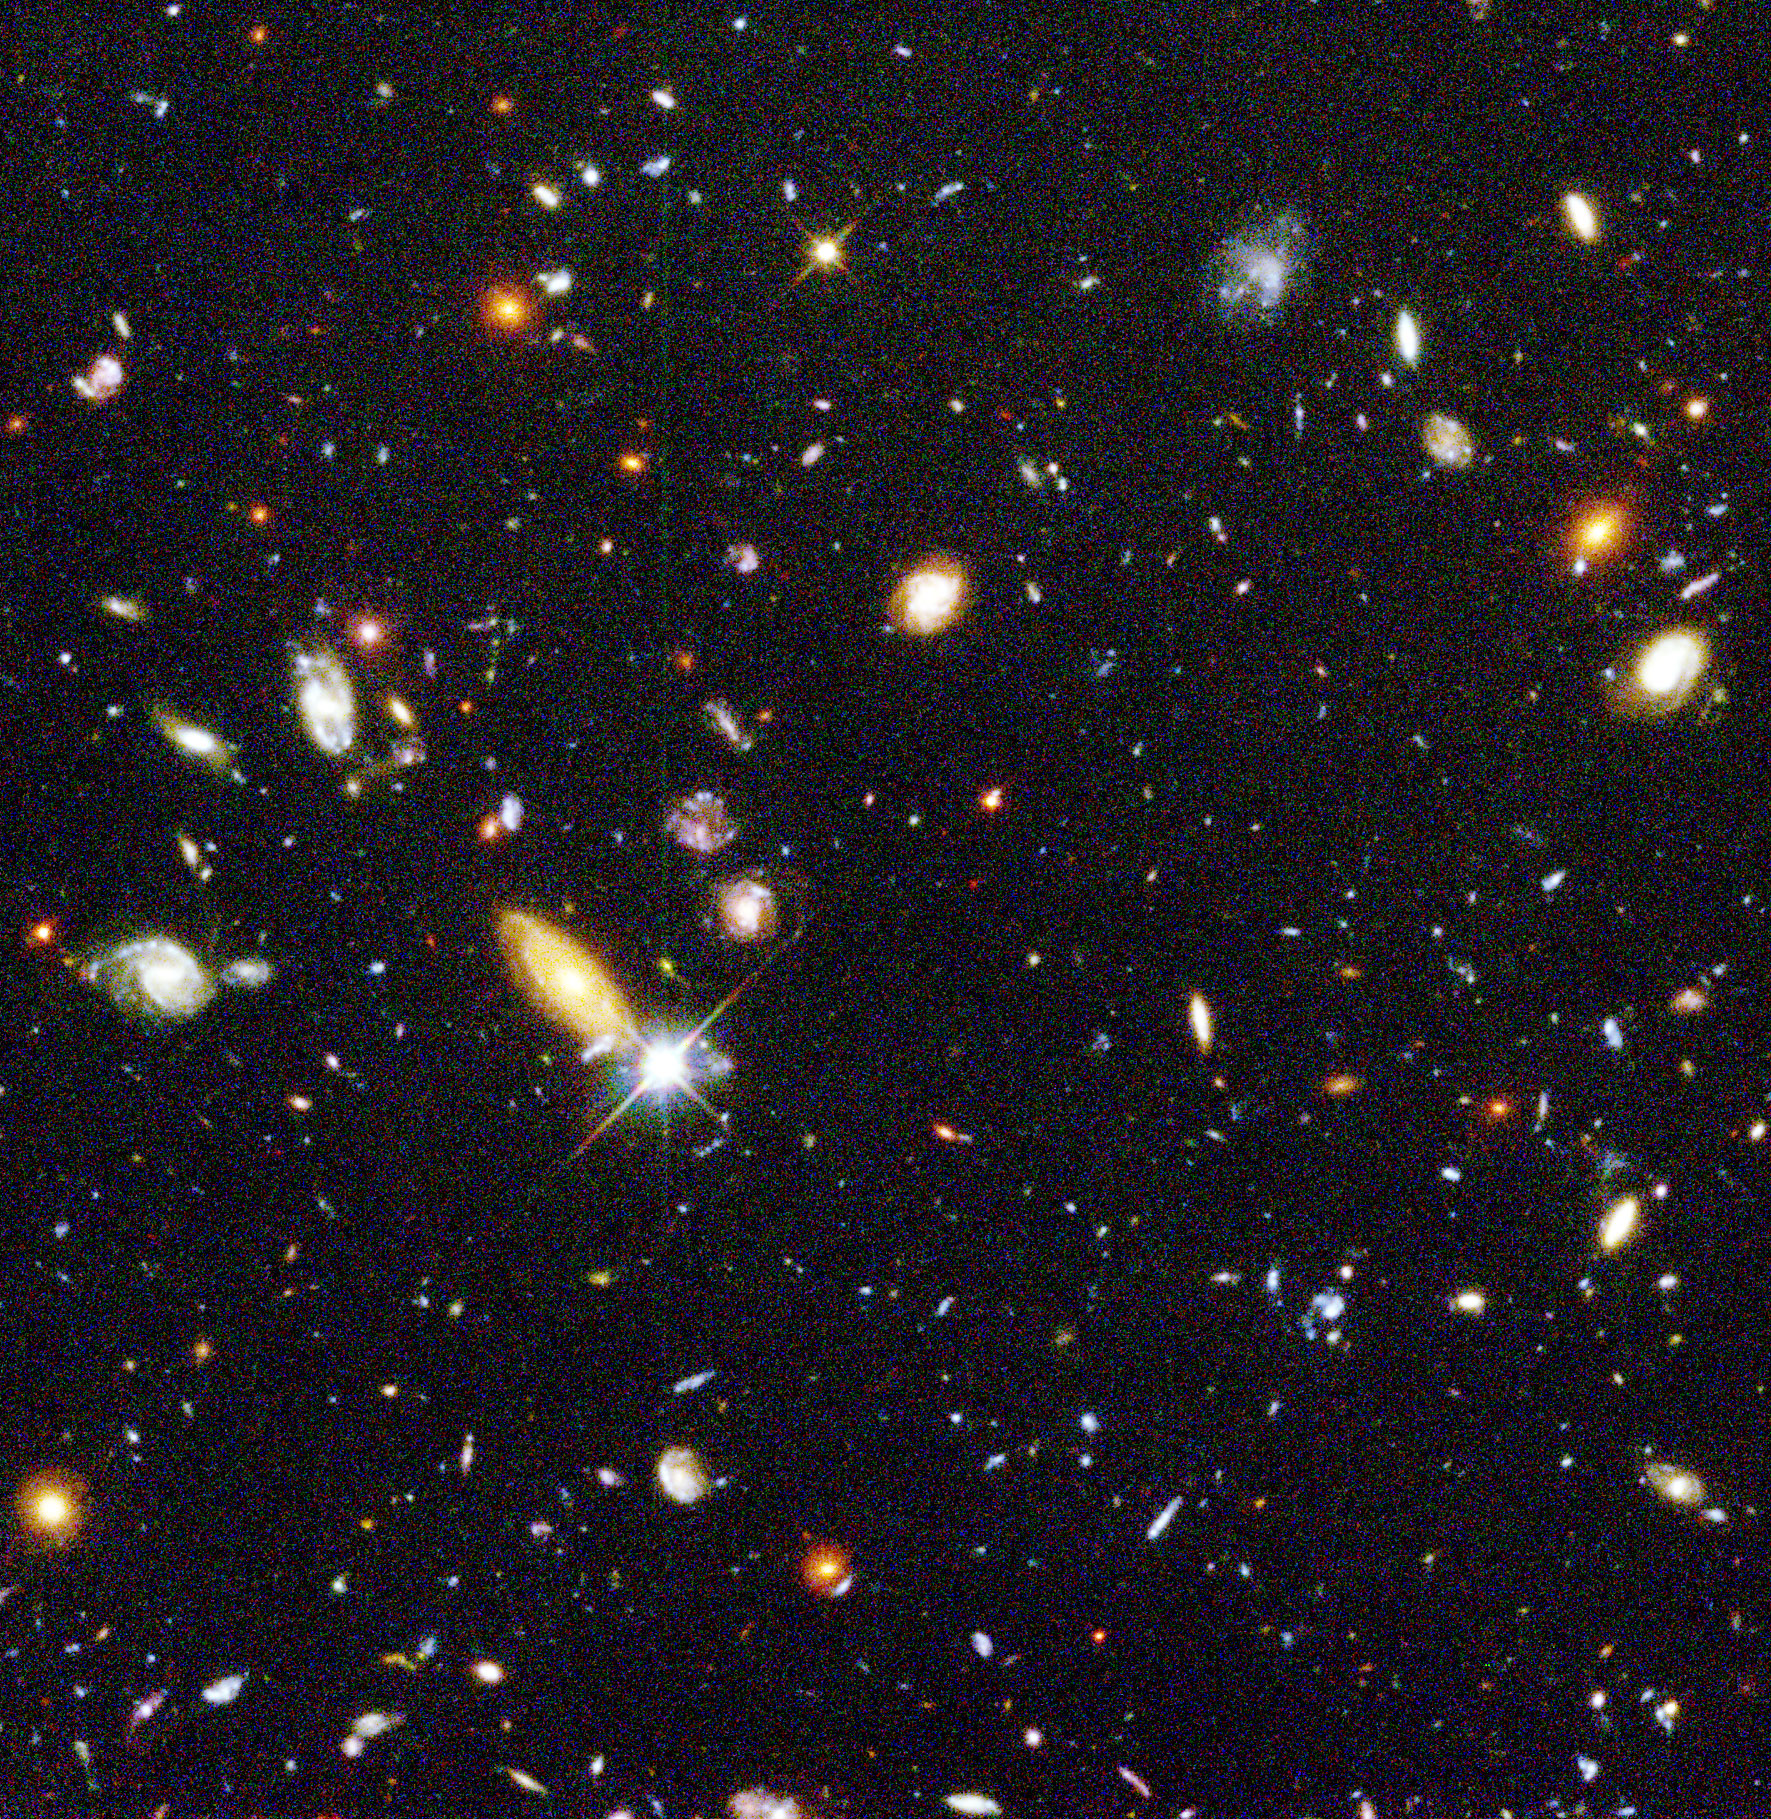 """Representing a narrow """"keyhole"""" view of the universe, the original Hubble Deep Field image covers a speck of the sky only about the width of a dime 75 feet away. Credit: Robert Williams, Hubble Deep Field Team (STScI), NASA"""